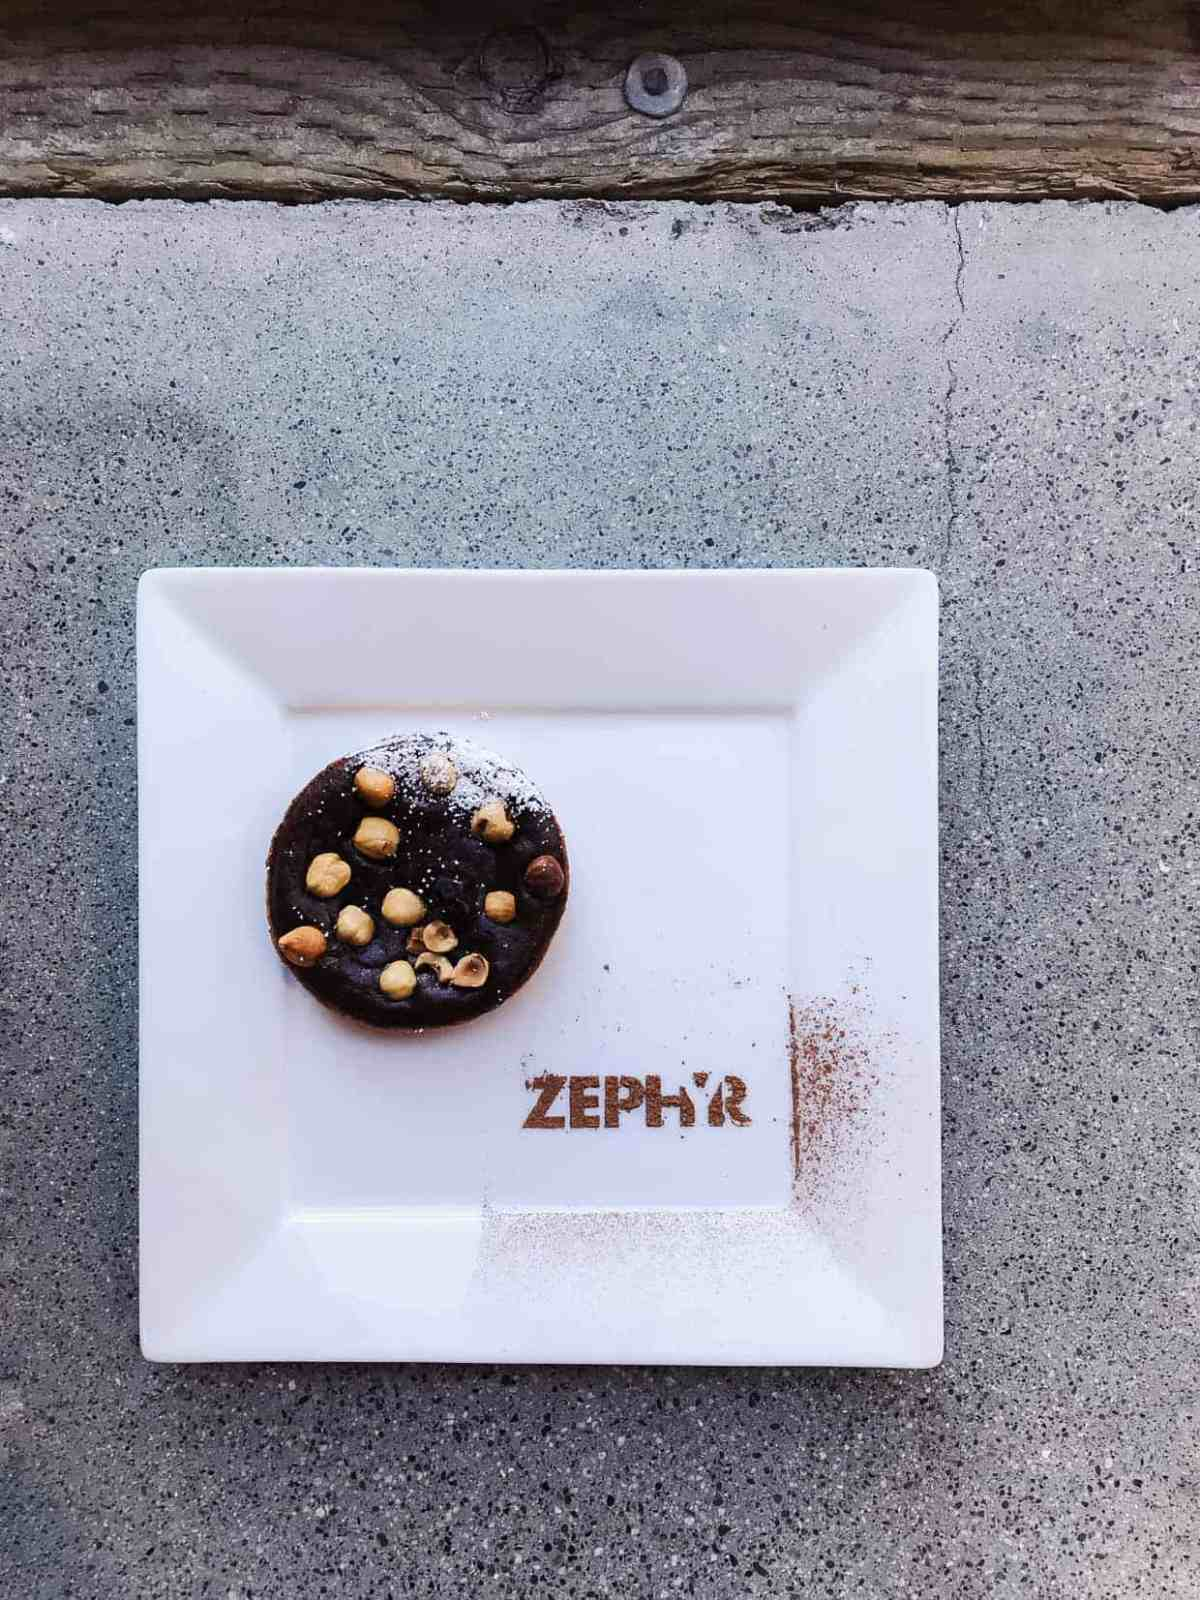 Dessert at Zephyr Showroom and the Zephyr Designer Retreat. #sponsored by Zephyr Ventilation. #ZephyrDesignTribe #ZephyrDesignerRetreat2017.